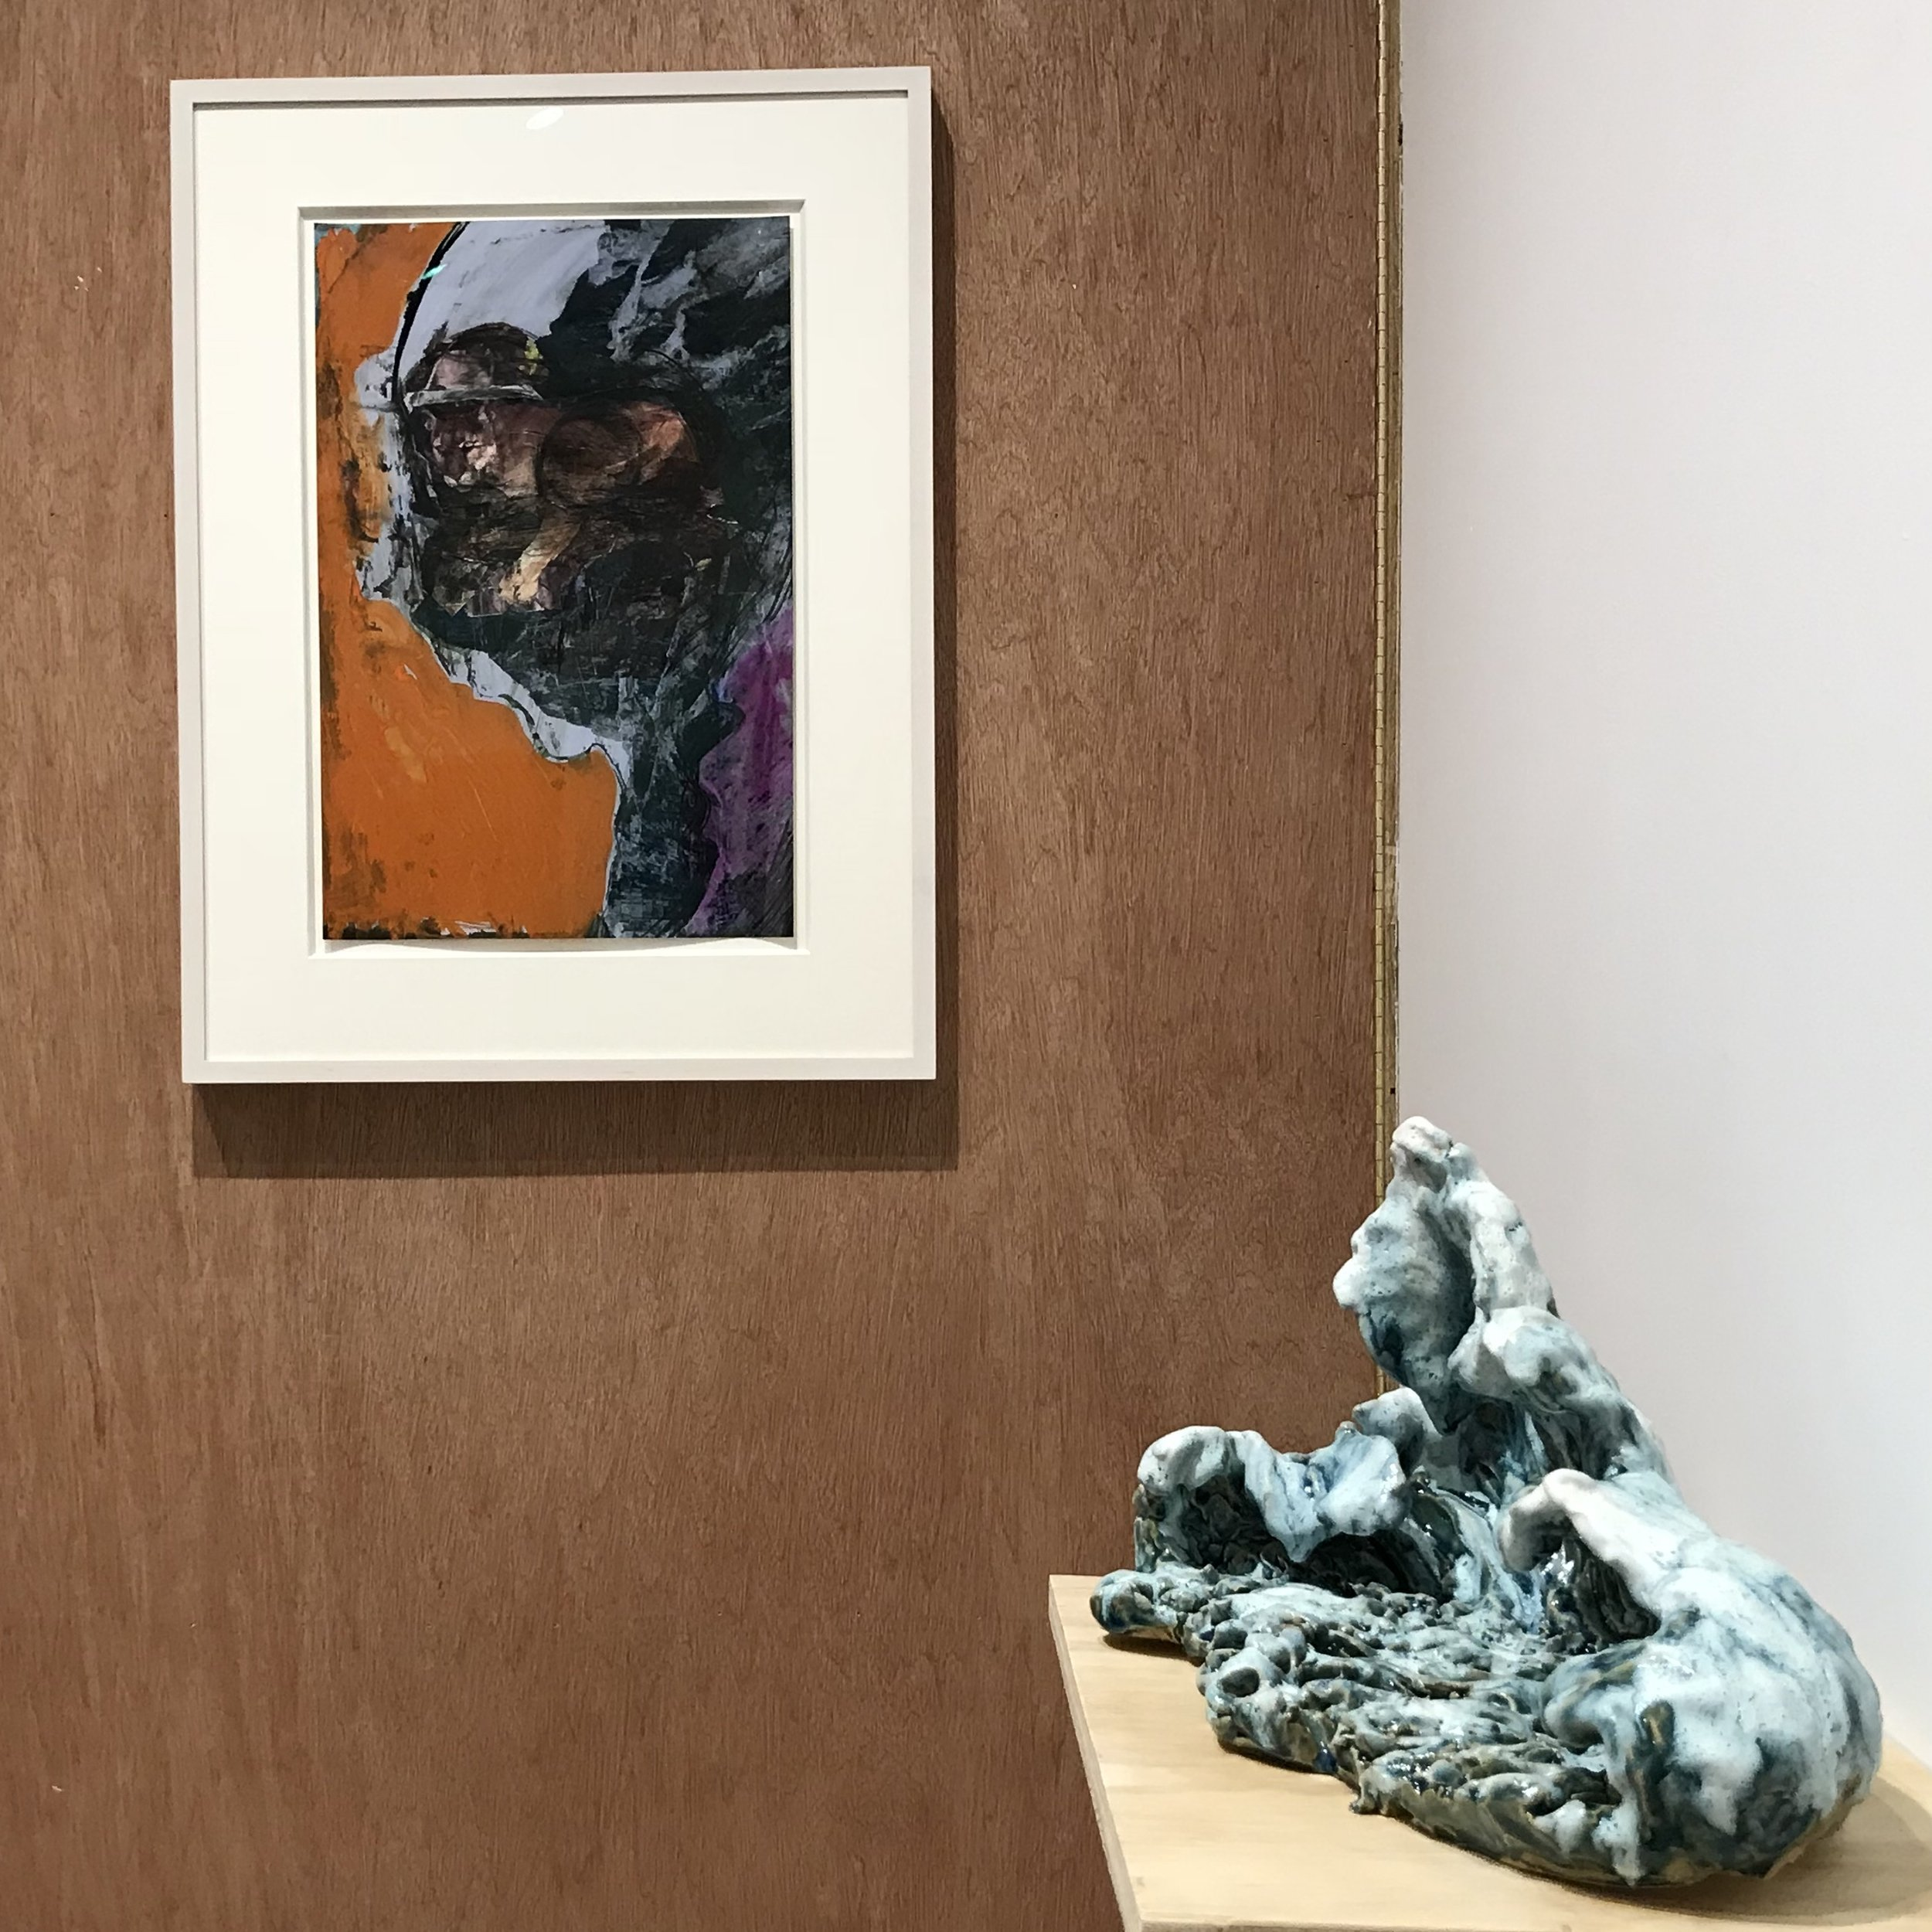 Huma Bhabha ,  Untitled , 2013, Ink and collage on color photo, 20 7/8 x 14 inches.   Chris Hammerlein ,  Untitled , 2018, Glazed ceramic, 8 3/4 x 16 x 8 inches.